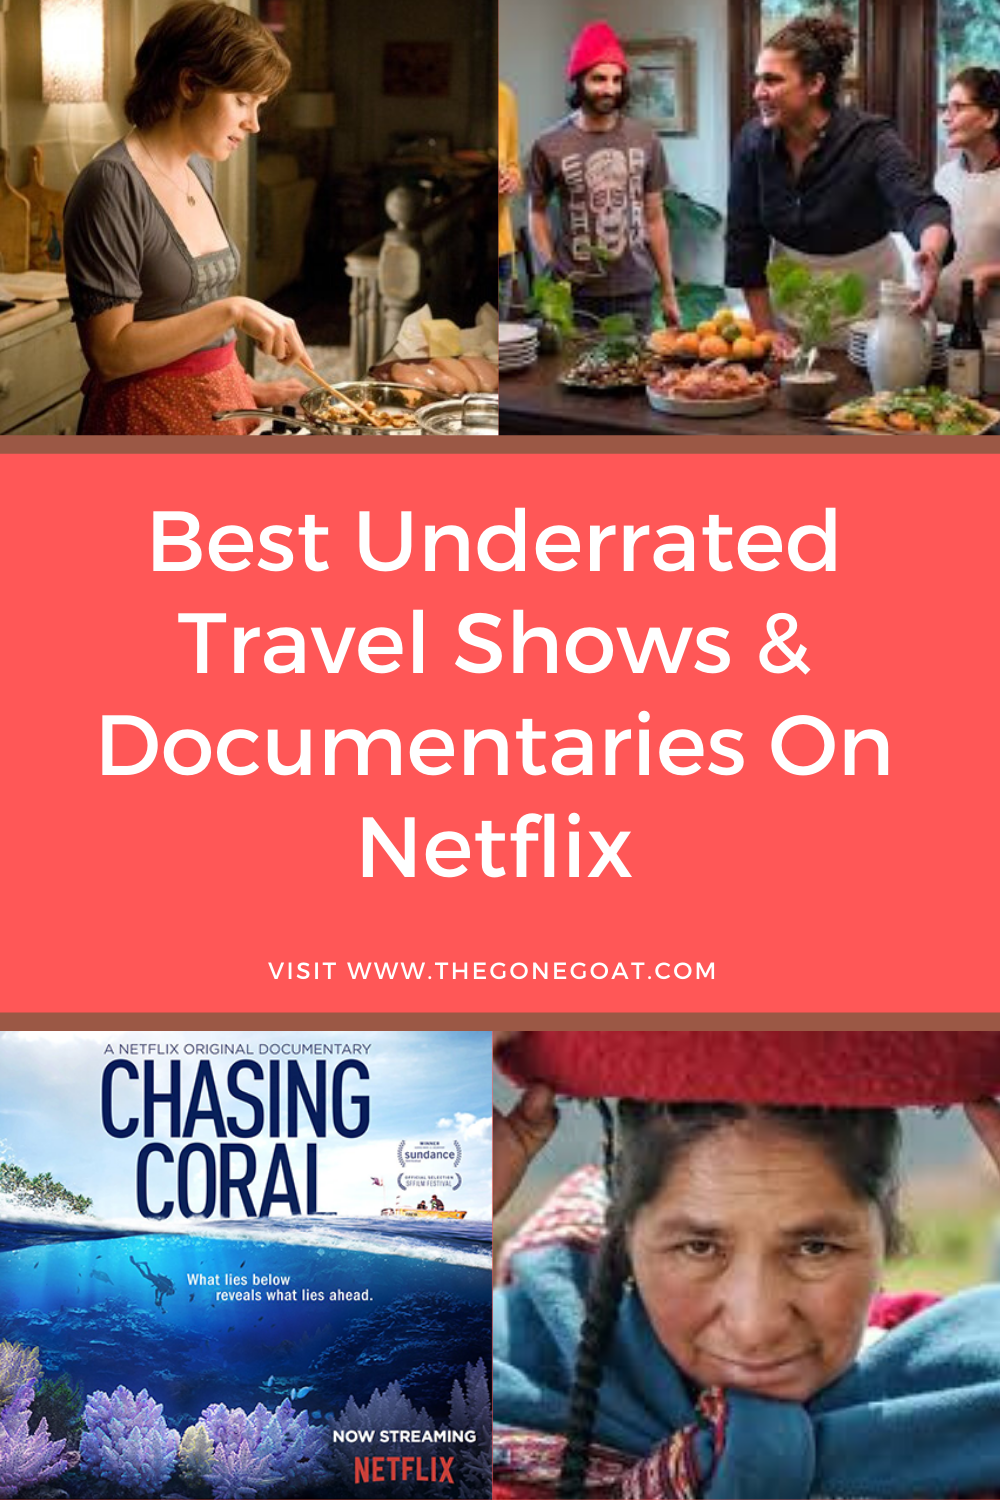 The best travel shows and documentaries on Netflix inspire us to dream a little longer and be knee-deep in narratives to remind us that is a world out there waiting to be explored. Here are the best and most underrated travel shows and documentaries on Netflix. #bestravelsshows #whattowatch #travelinspiration #travelideas #travelshows #traveldocumentaries #foodshows #foodinspiration